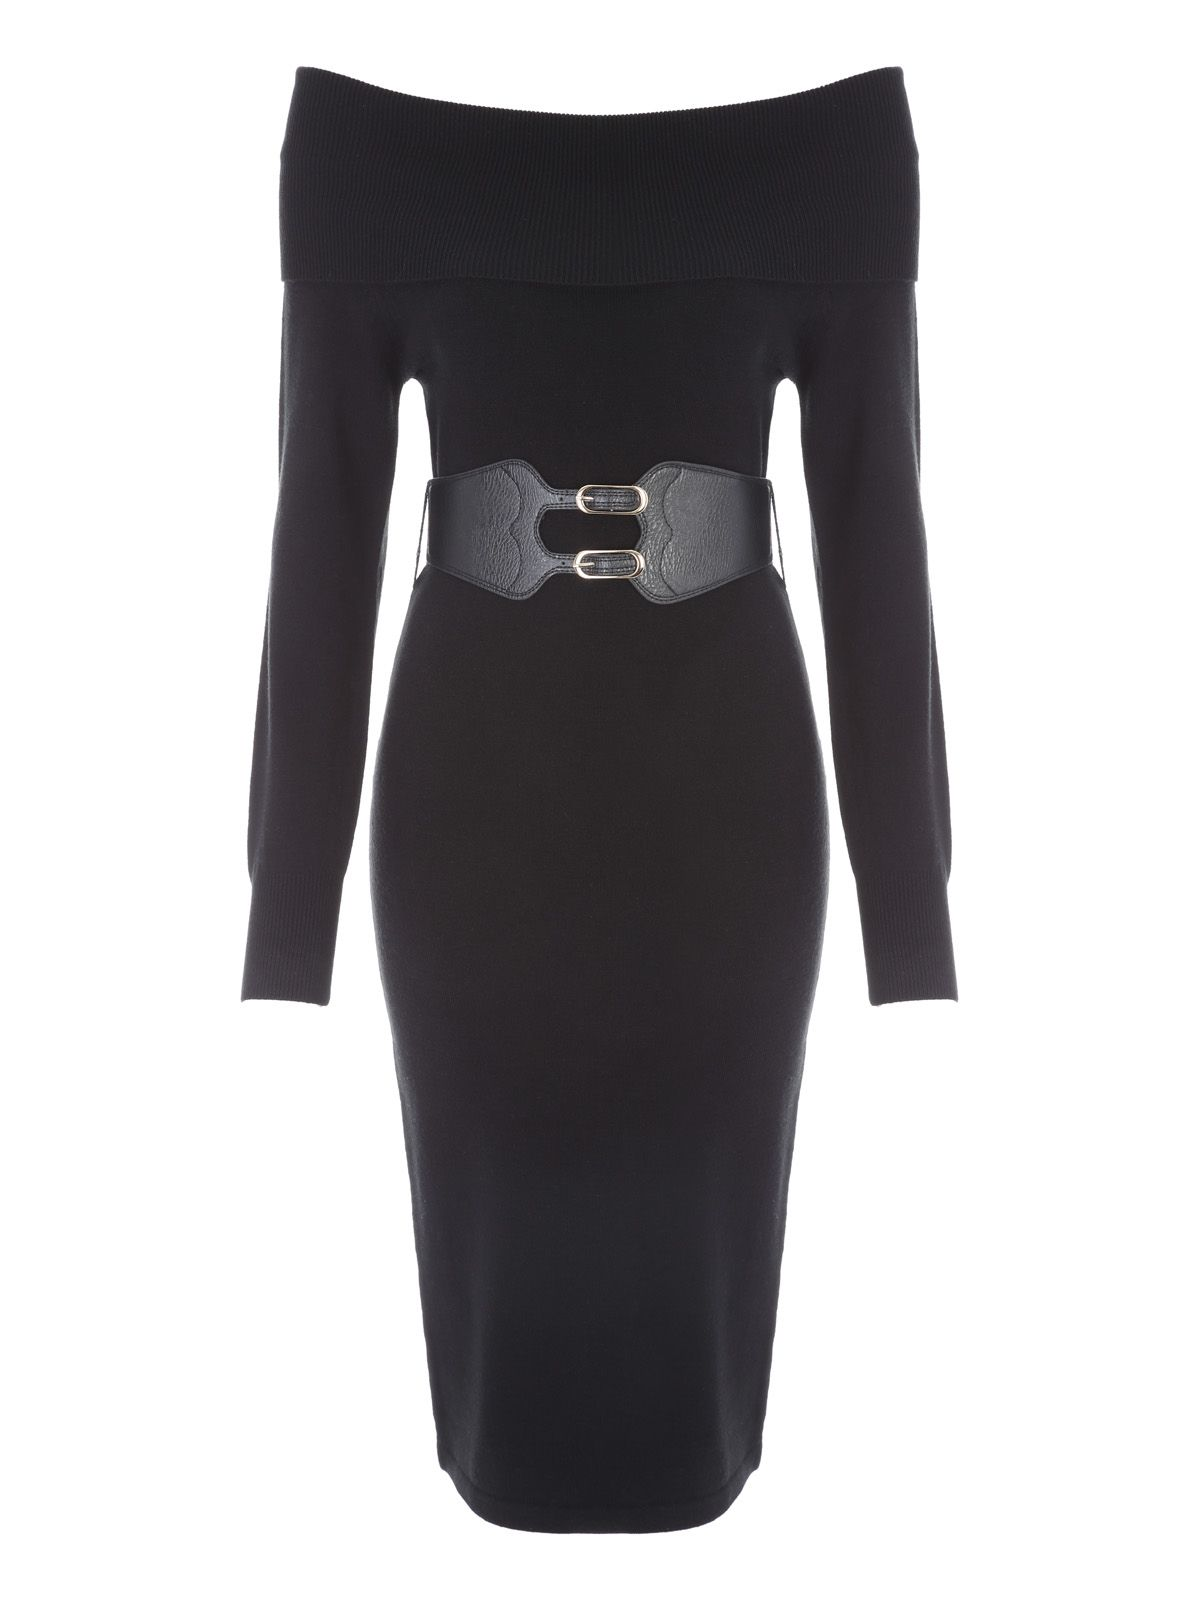 Jane Norman Bardot Belted Jumper Dress, Black